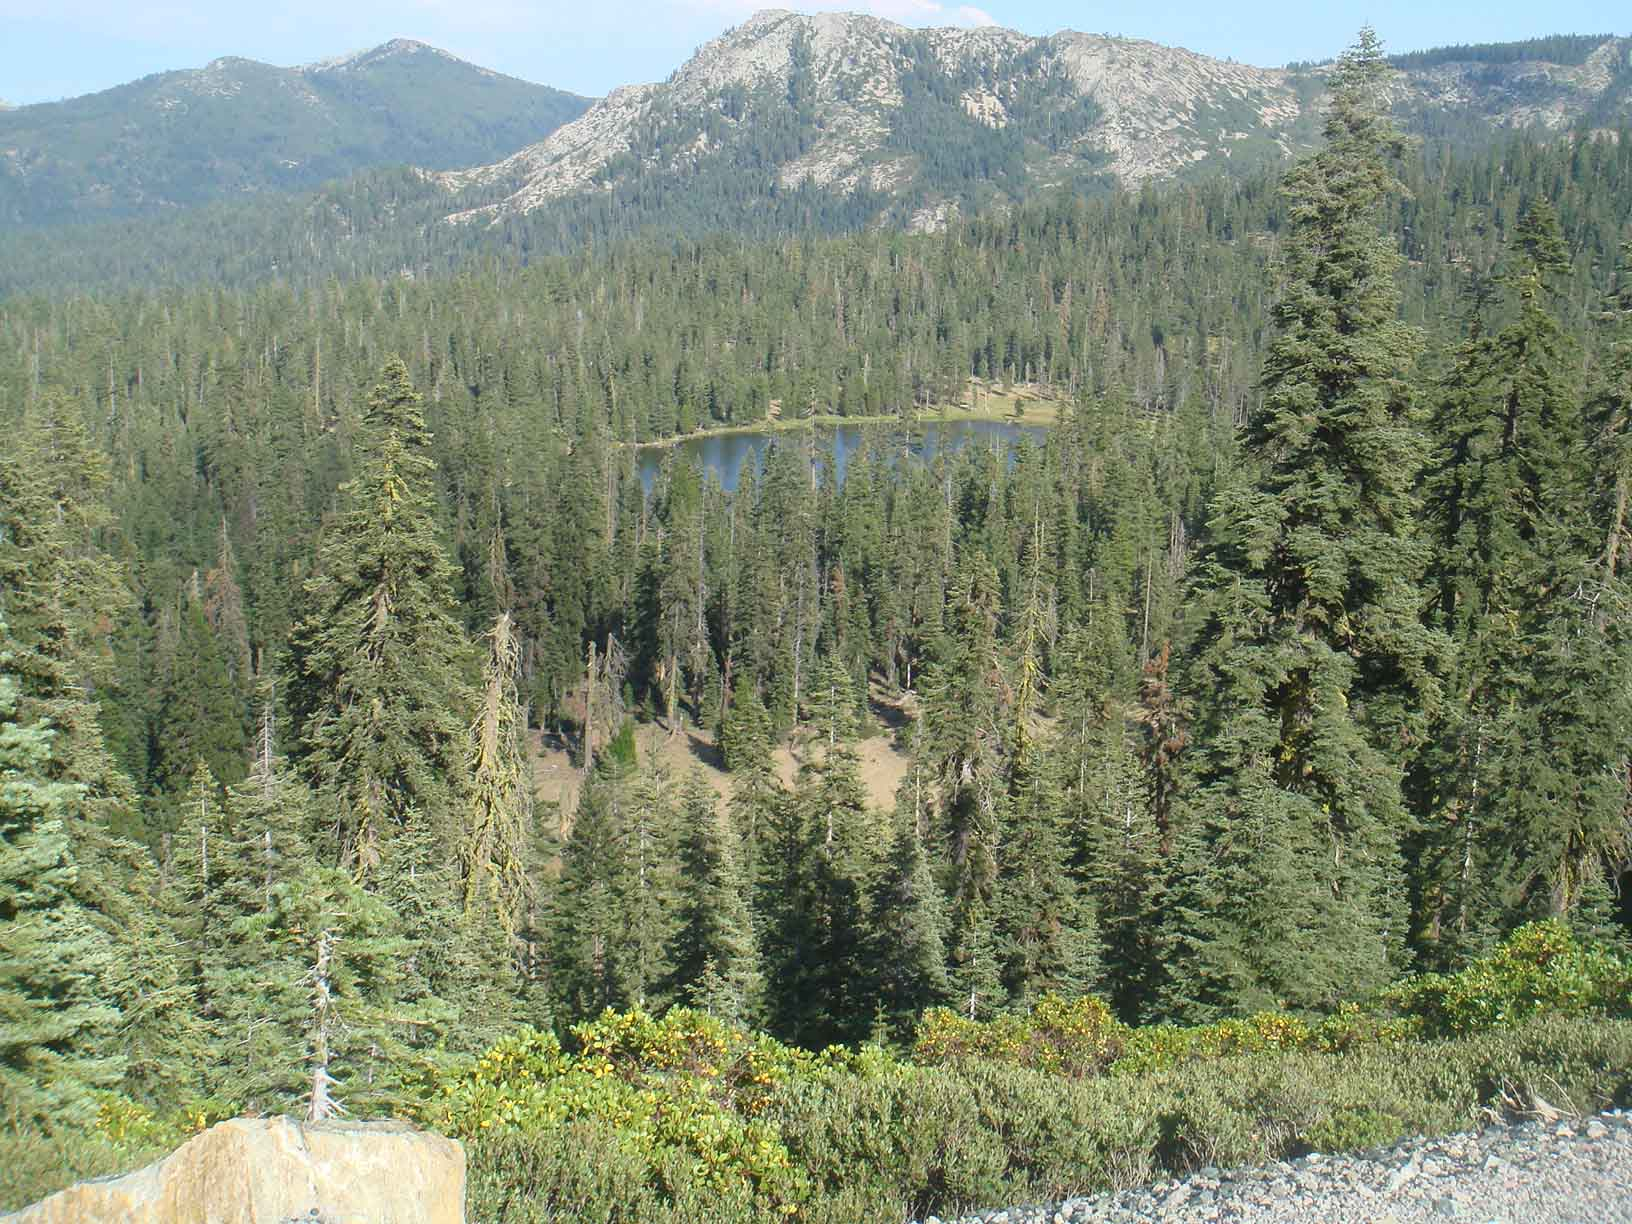 Gumboot Lake from Distance